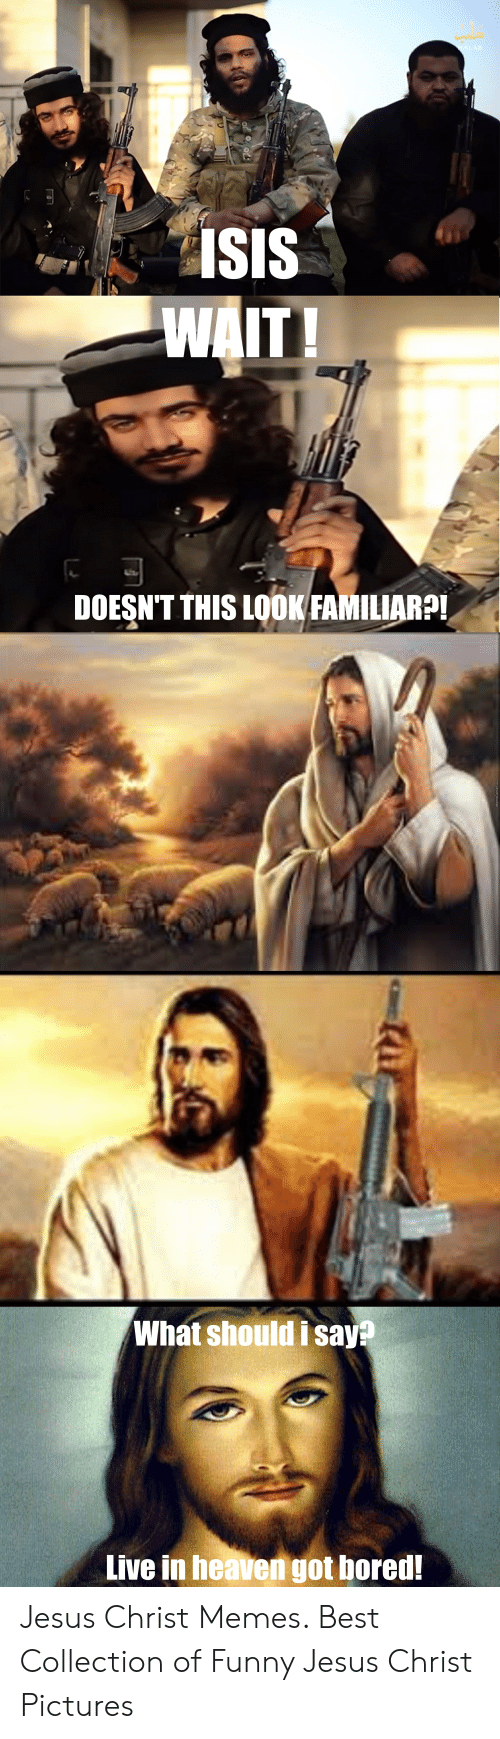 Bored, Funny, and Heaven: ISIS  DOESN'T THIS LOOK FAMILIARP!  What should i say?  Live in heaven got bored! Jesus Christ Memes. Best Collection of Funny Jesus Christ Pictures